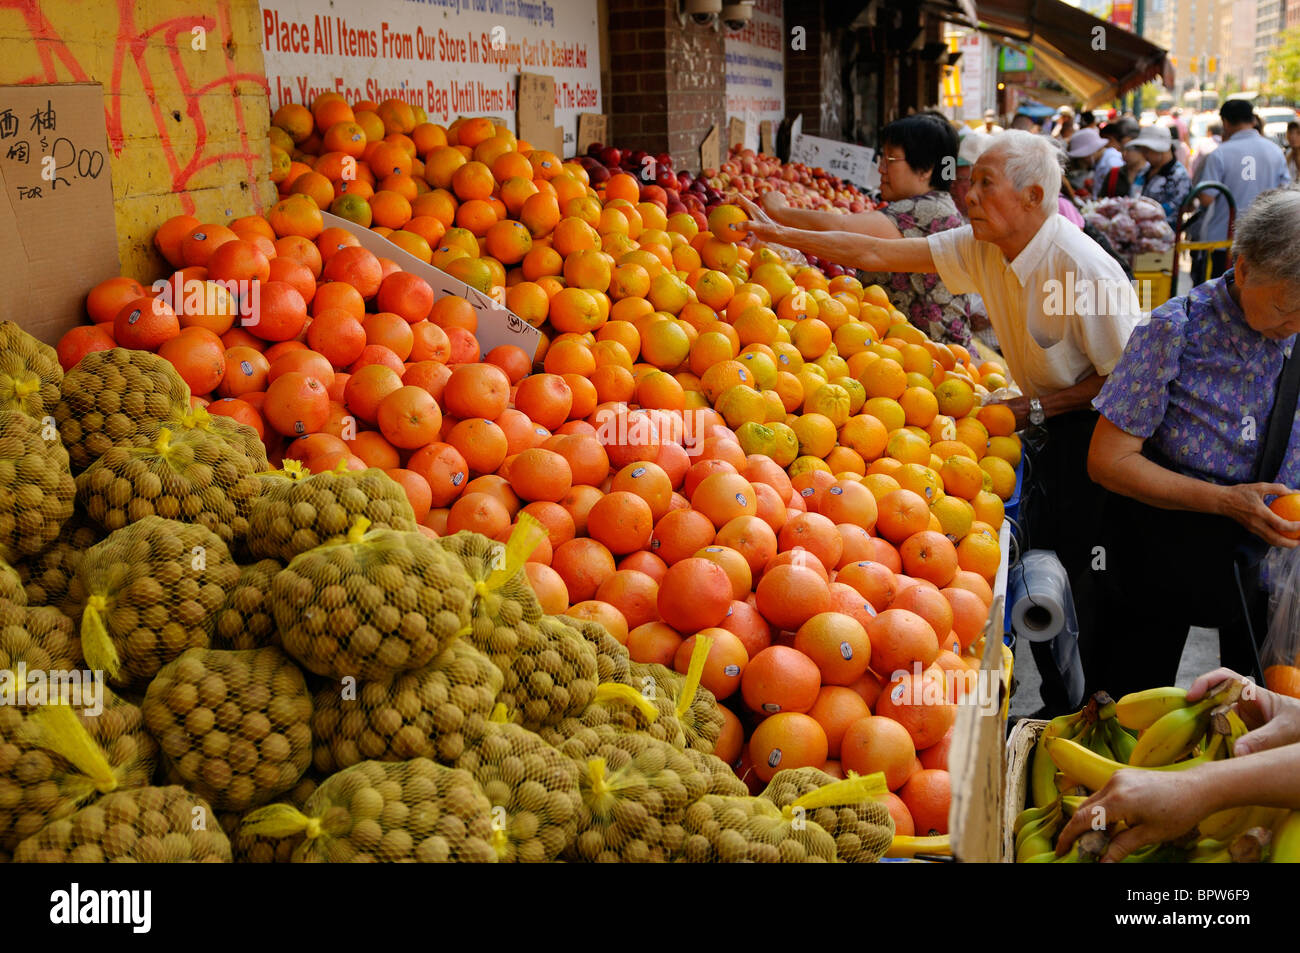 Shoppers picking fruit produce at a sidewalk grocery store in Chinatown Toronto - Stock Image